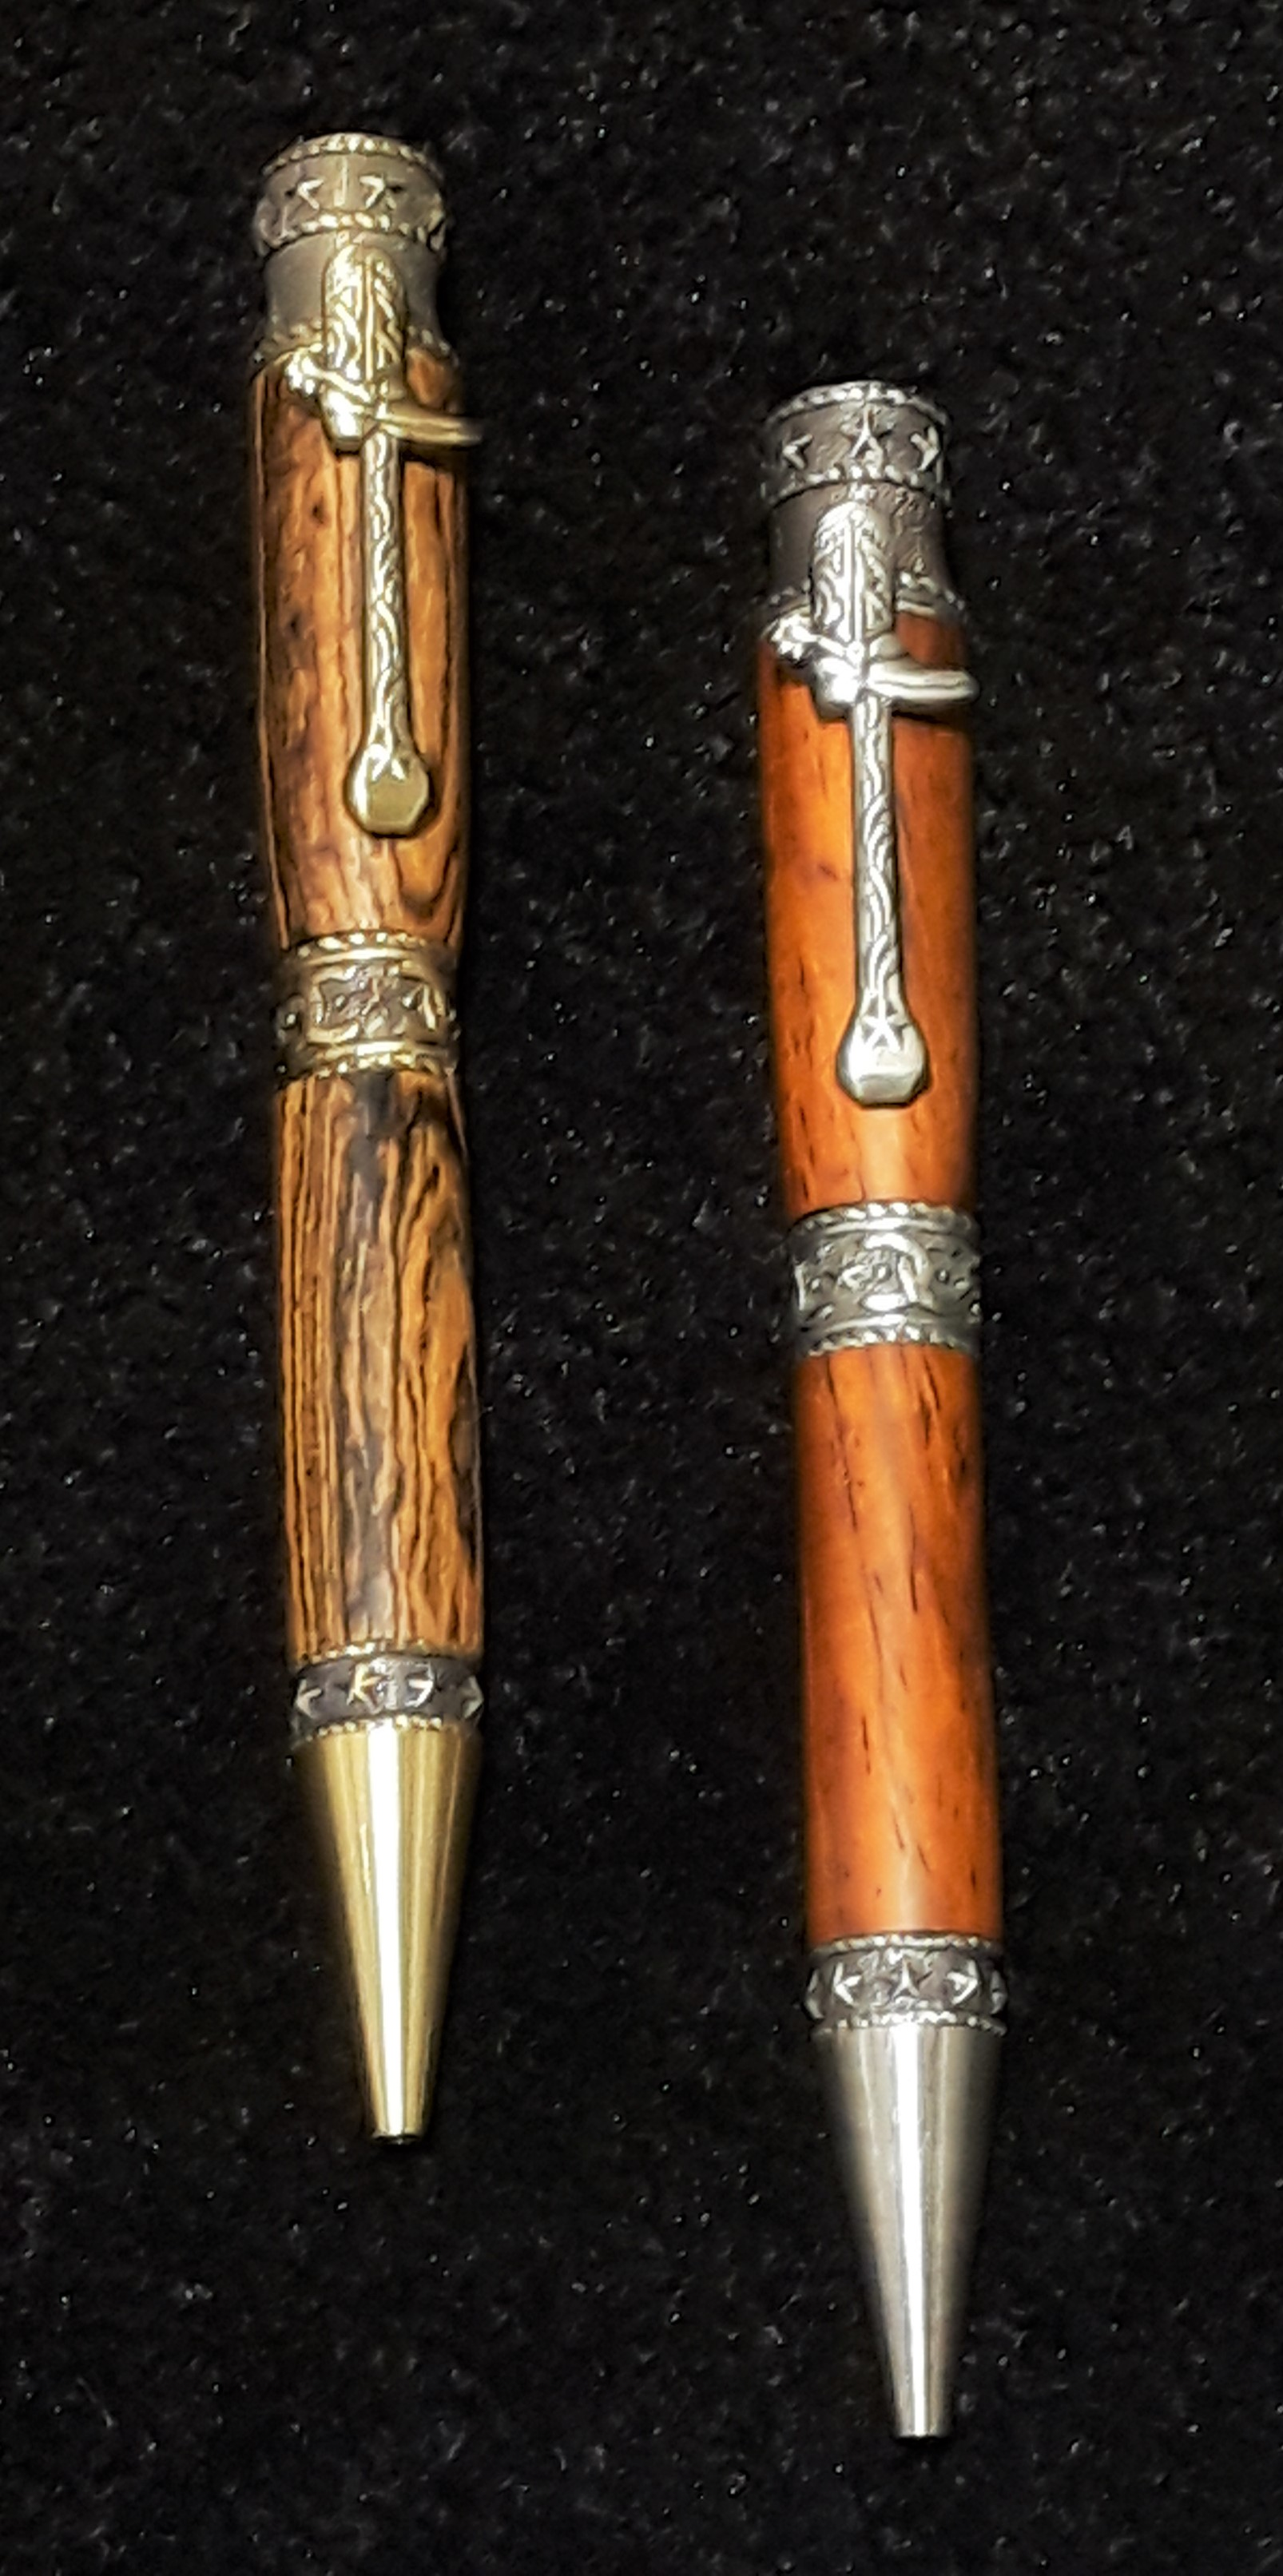 Allywood Creations Cowboy Pen - Wood